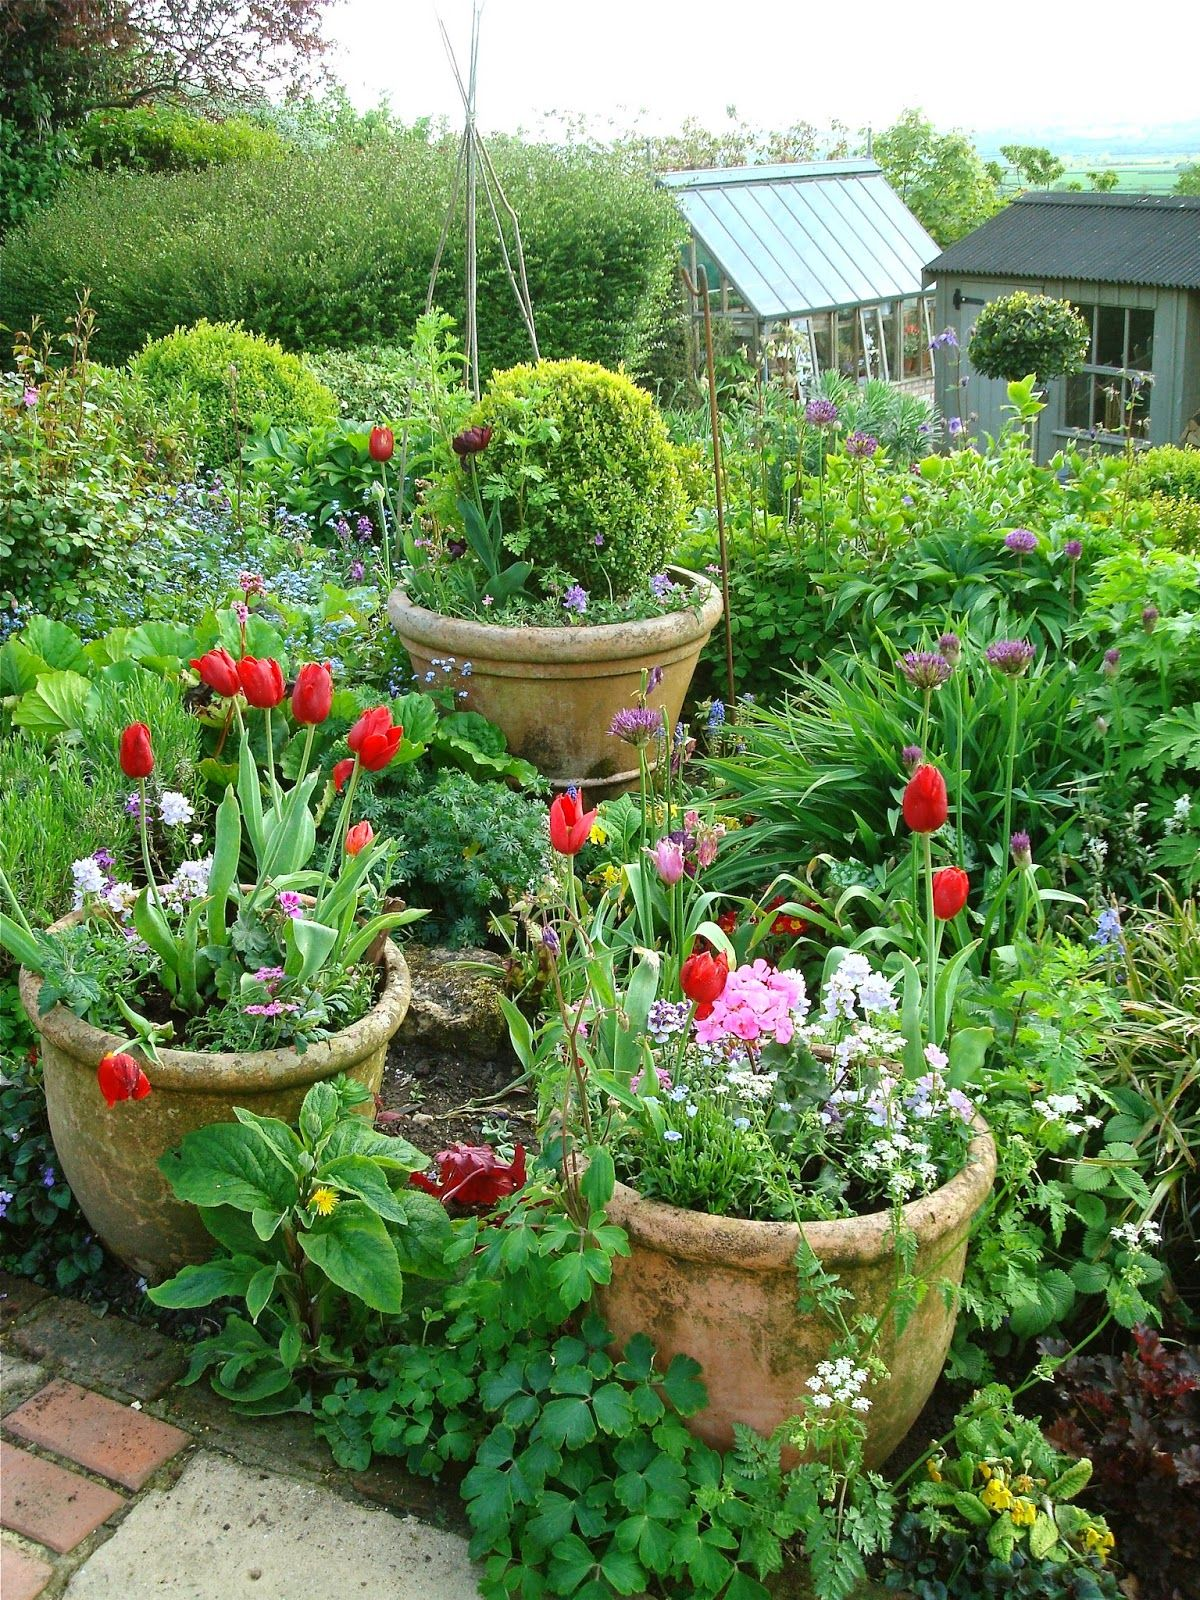 Cottage Garden Pots The more pots in the garden the less time on your knees pulling the more pots in the garden the less time on your knees pulling weeds workwithnaturefo